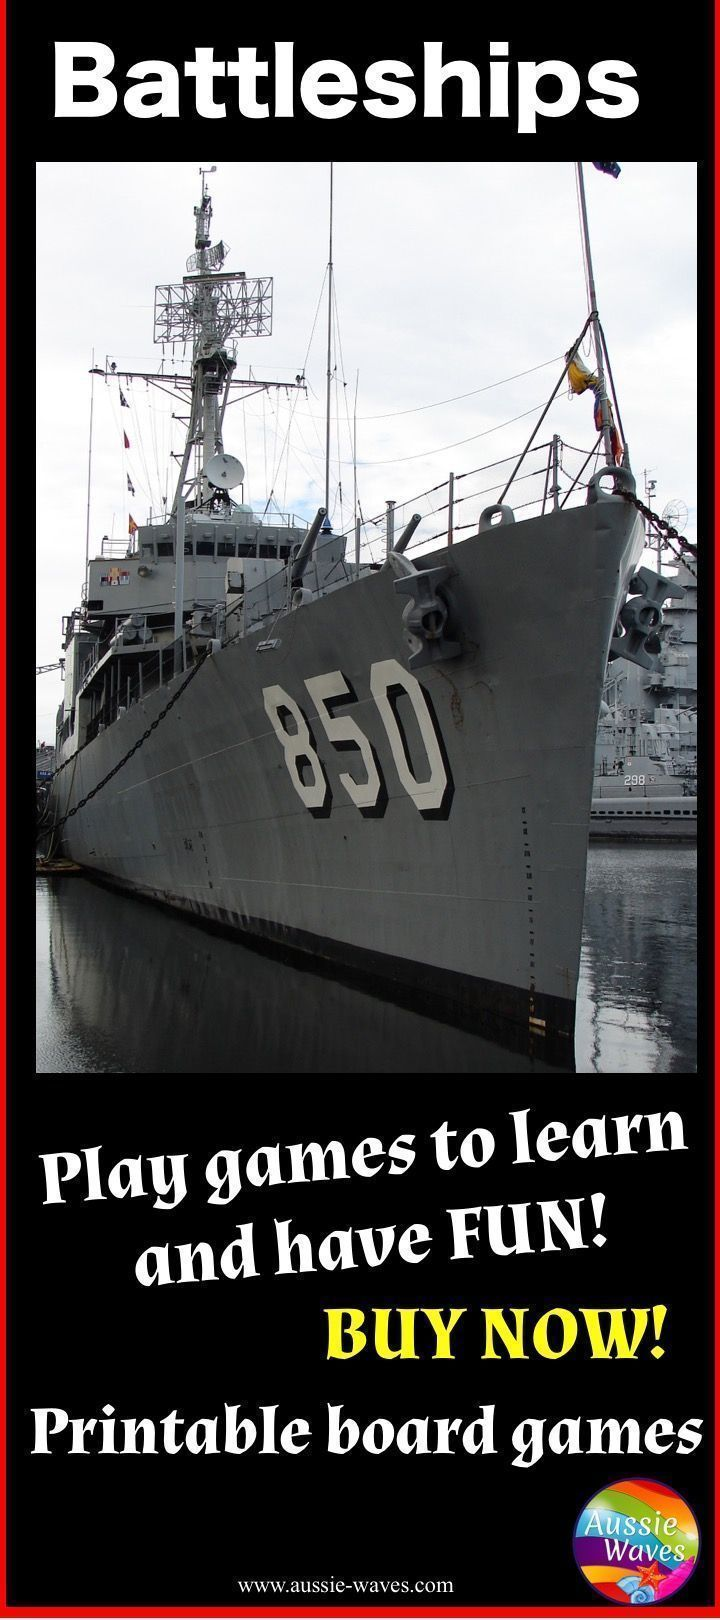 BATTLESHIP Printable Game boards learn SPELLING & TIMES